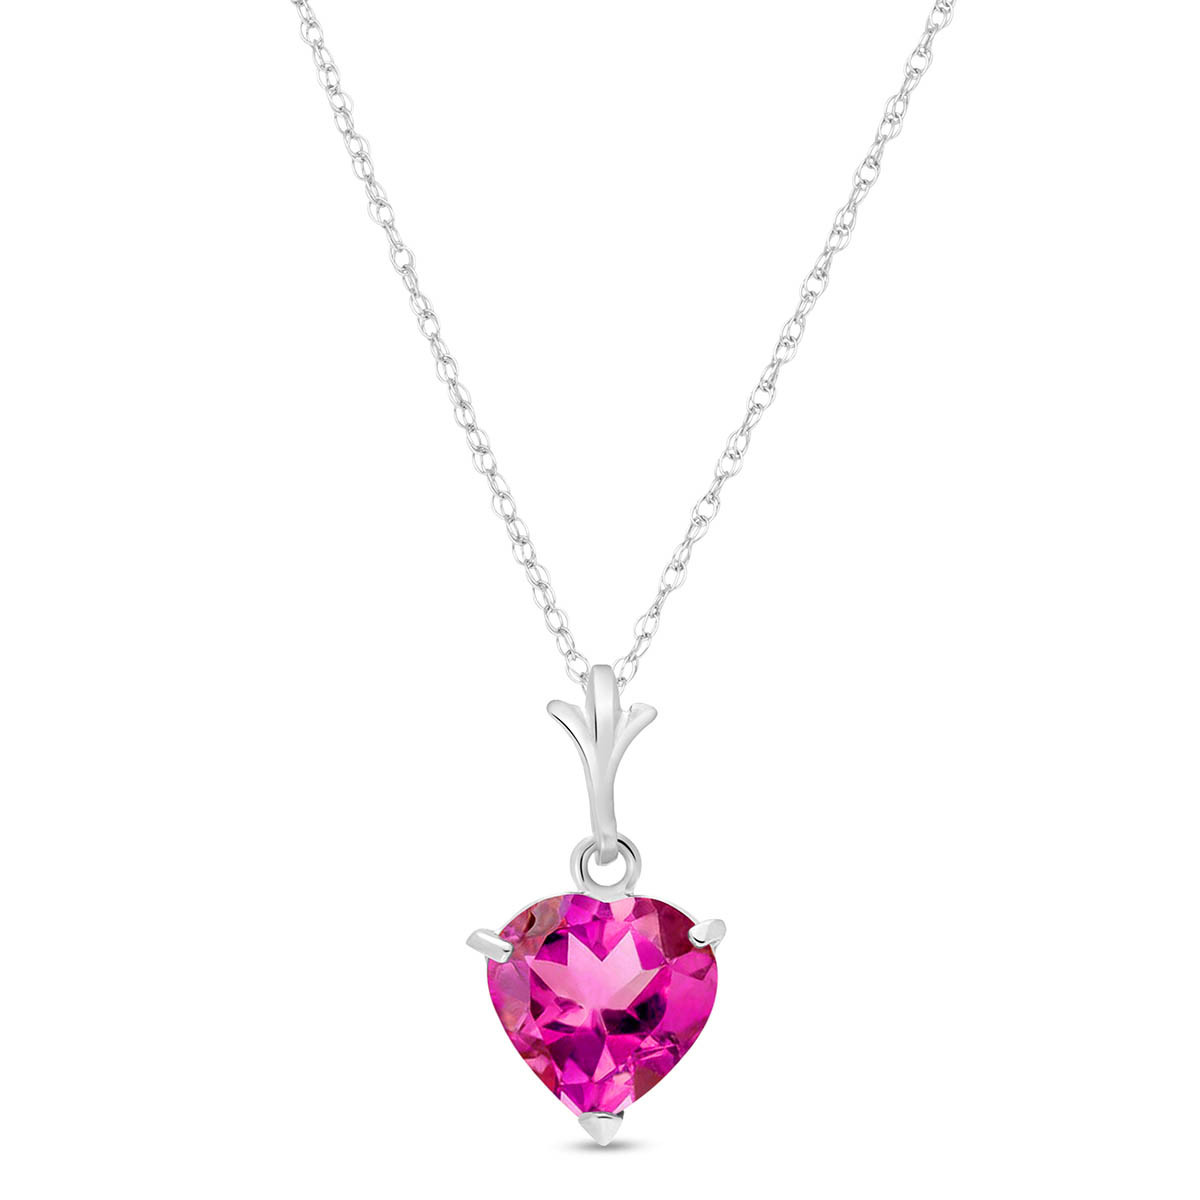 Pink Topaz Heart Pendant Necklace 1.15 ct in 9ct White Gold